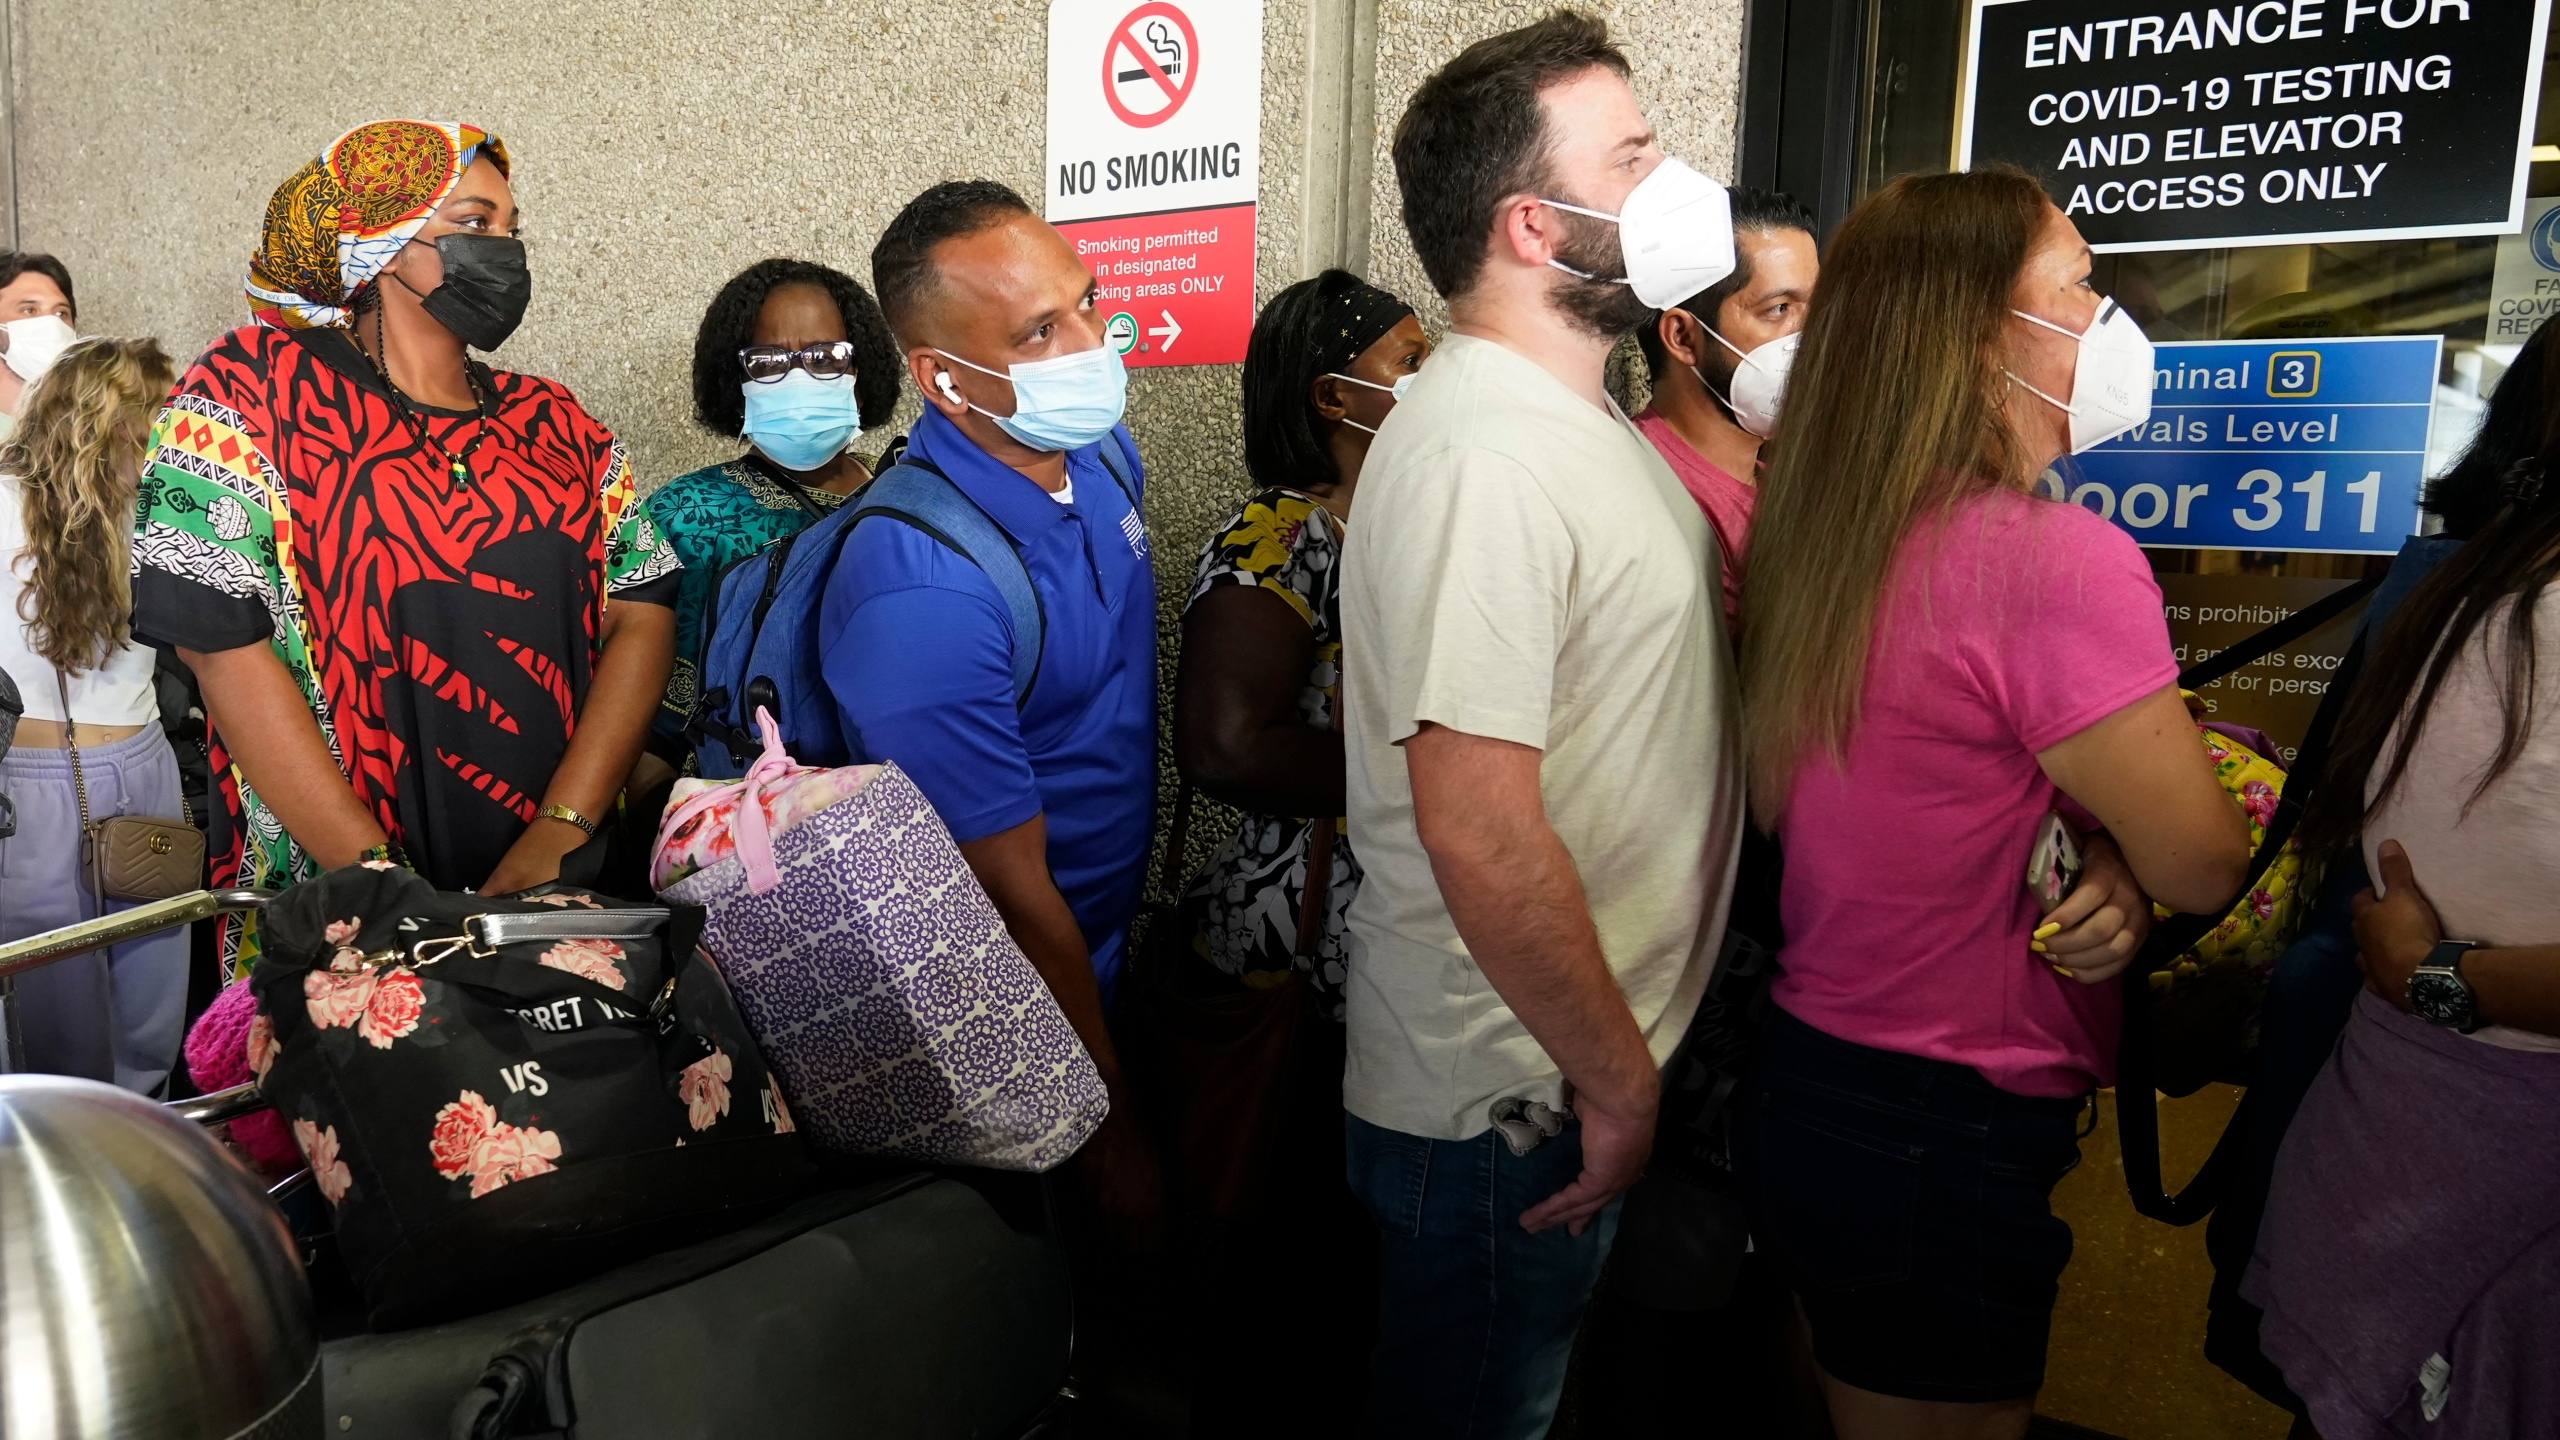 Recent flight cancelations caused many passengers to redo their tests while others were unable to get the test locally due to long lines caused by the surge of the Delta variant.